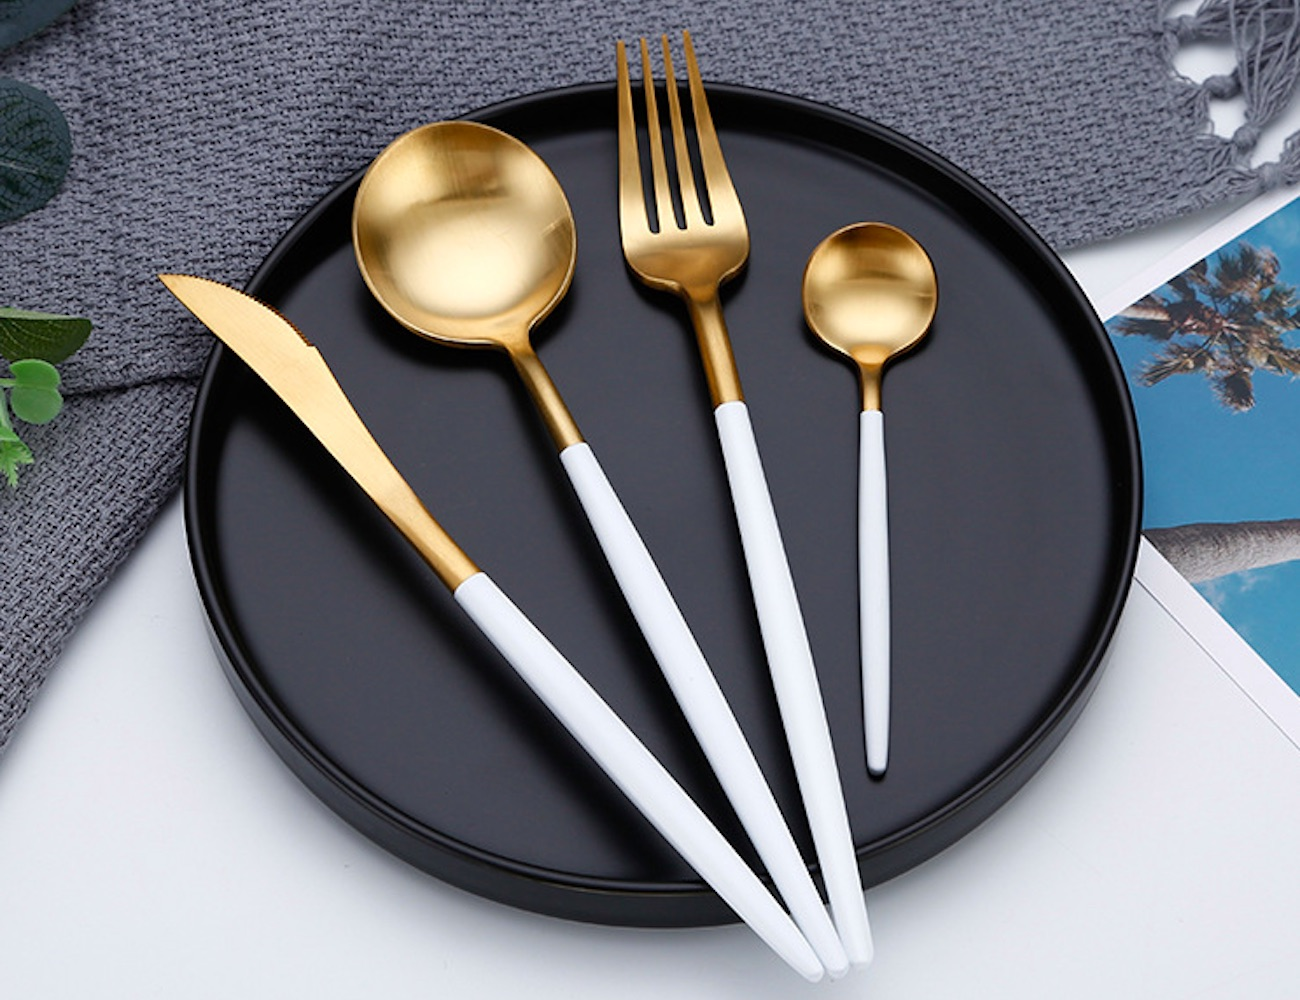 This Metallic Cutlery Set Is All About Style for Your Table